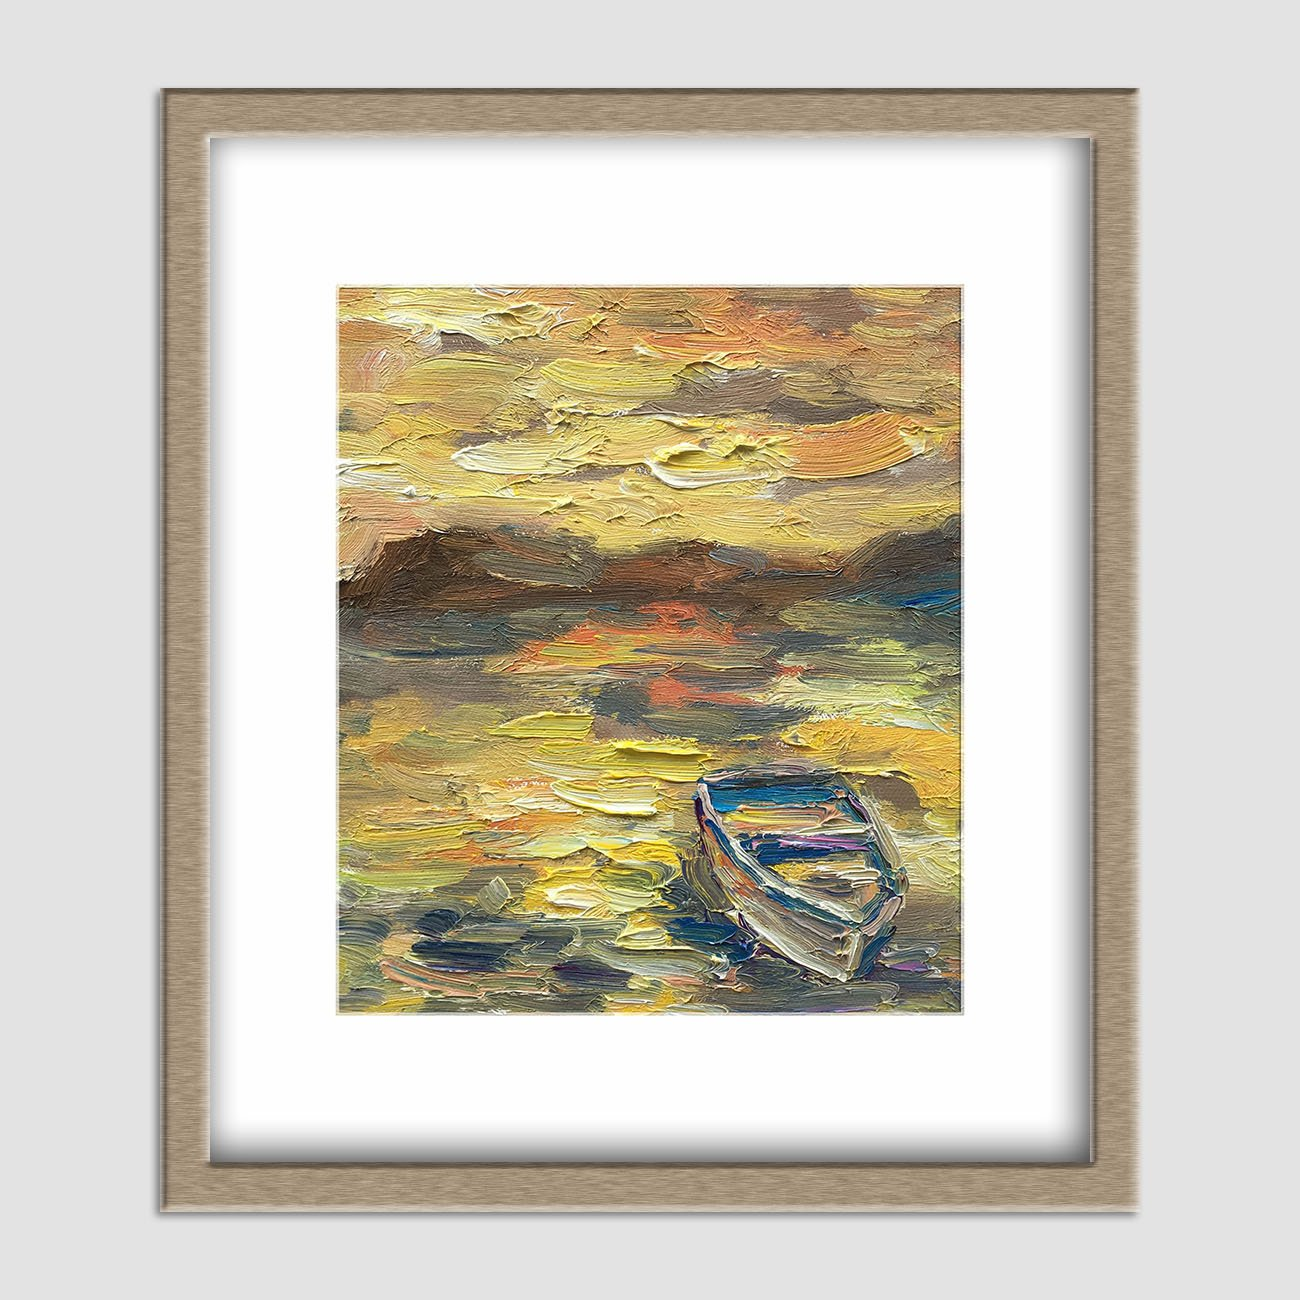 Oil Painting Fishing Boat, Small Canvas Painting, Contemporary Art, Small Metal Wall Art, Canvas Painting, Abstract Landscape Painting